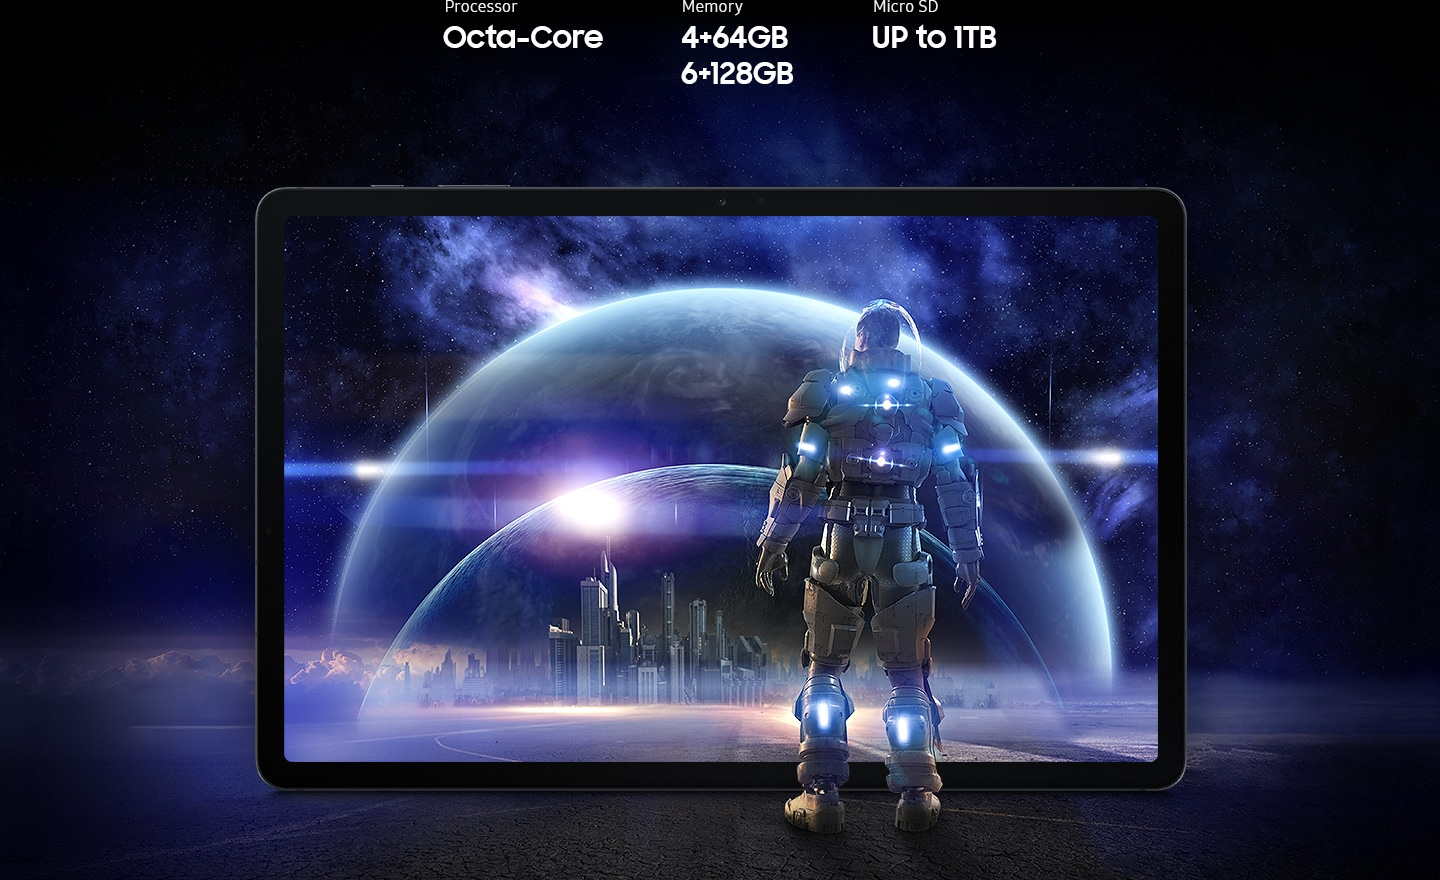 Galaxy Tab S7 FE seen from the front with a futuristic scene from a game onscreen. A person in a spacesuit stands in front of the screen, staring into the scene of glass bubbles surrounding a cityscape. Text says Processor Octa-core, Memory 4 plus 64GB, 6 plus 128GB, MicroSD up to 1TB.